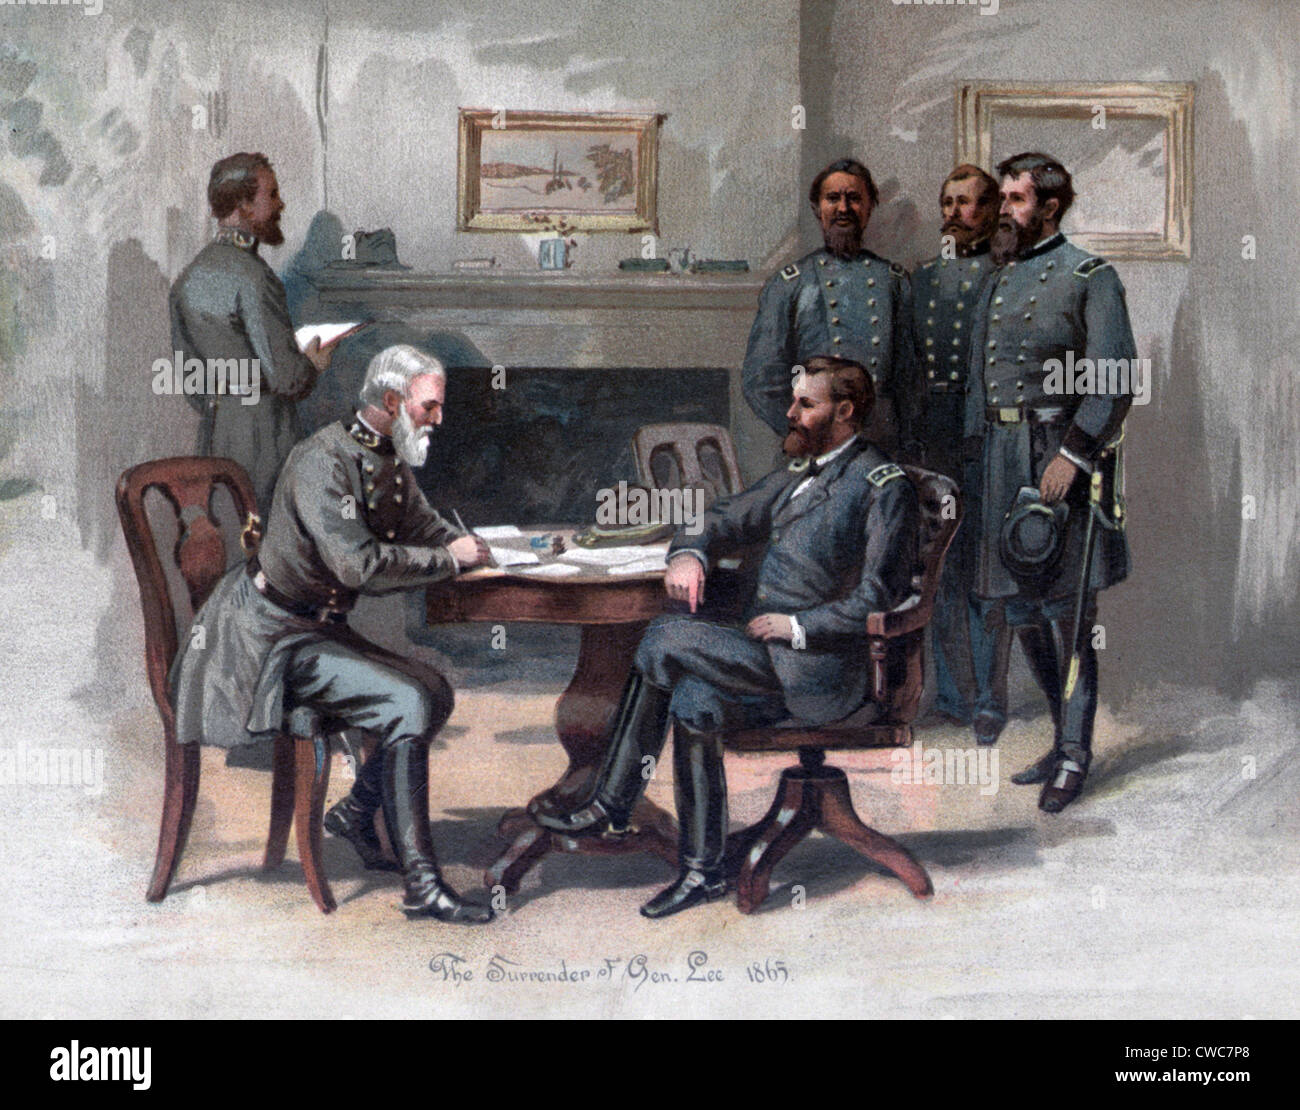 The Civil War. The Surrender at Appomatox Robert E. Lee and Ulysses S. Grant 1865 - Stock Image